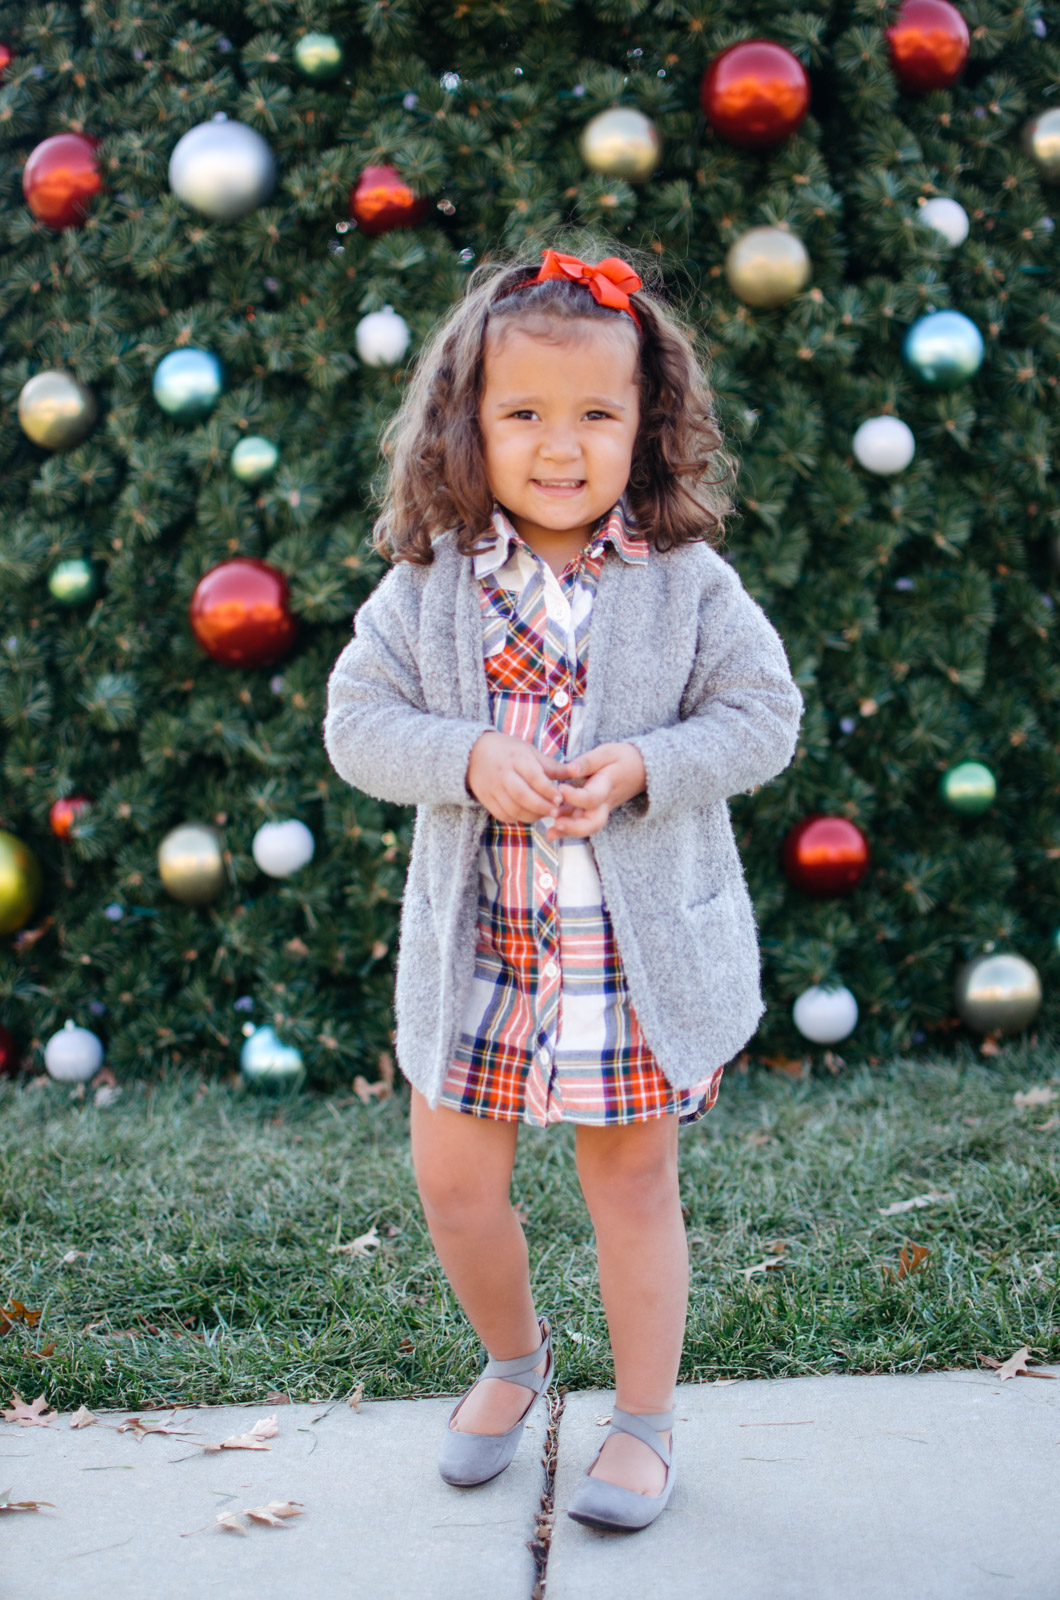 toddler outfit christmas - cute toddler outfit ideas winter | Get all the outfit details at bylaurenm.com!